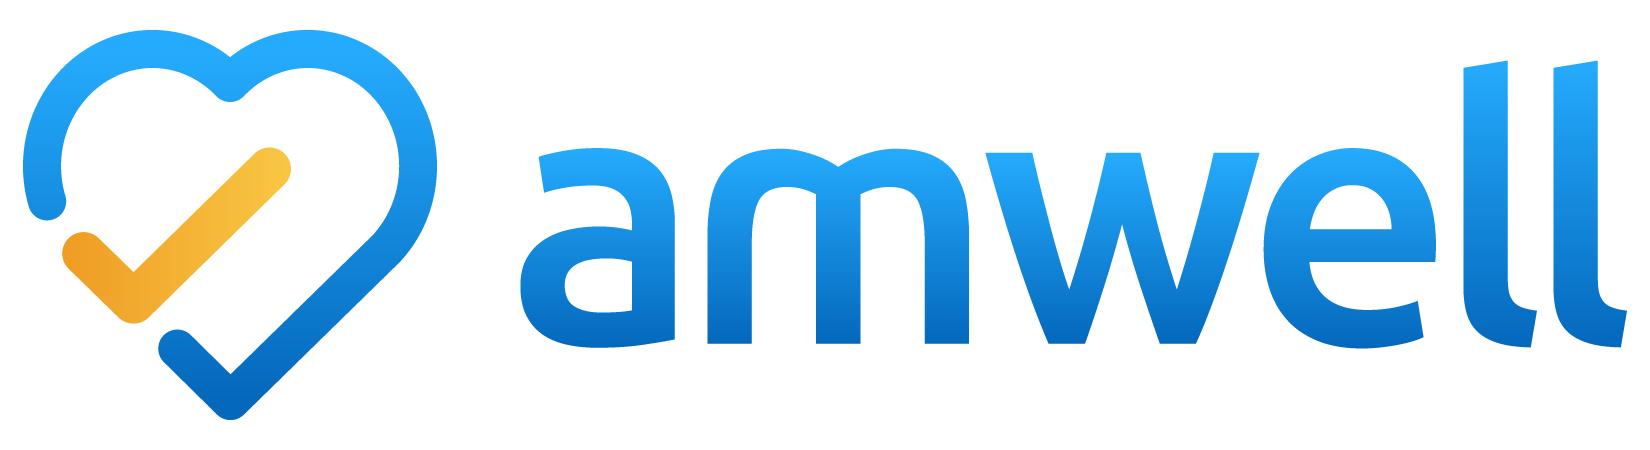 AmWell #2 - Best Telemedicine Companies Compared & Reviewed